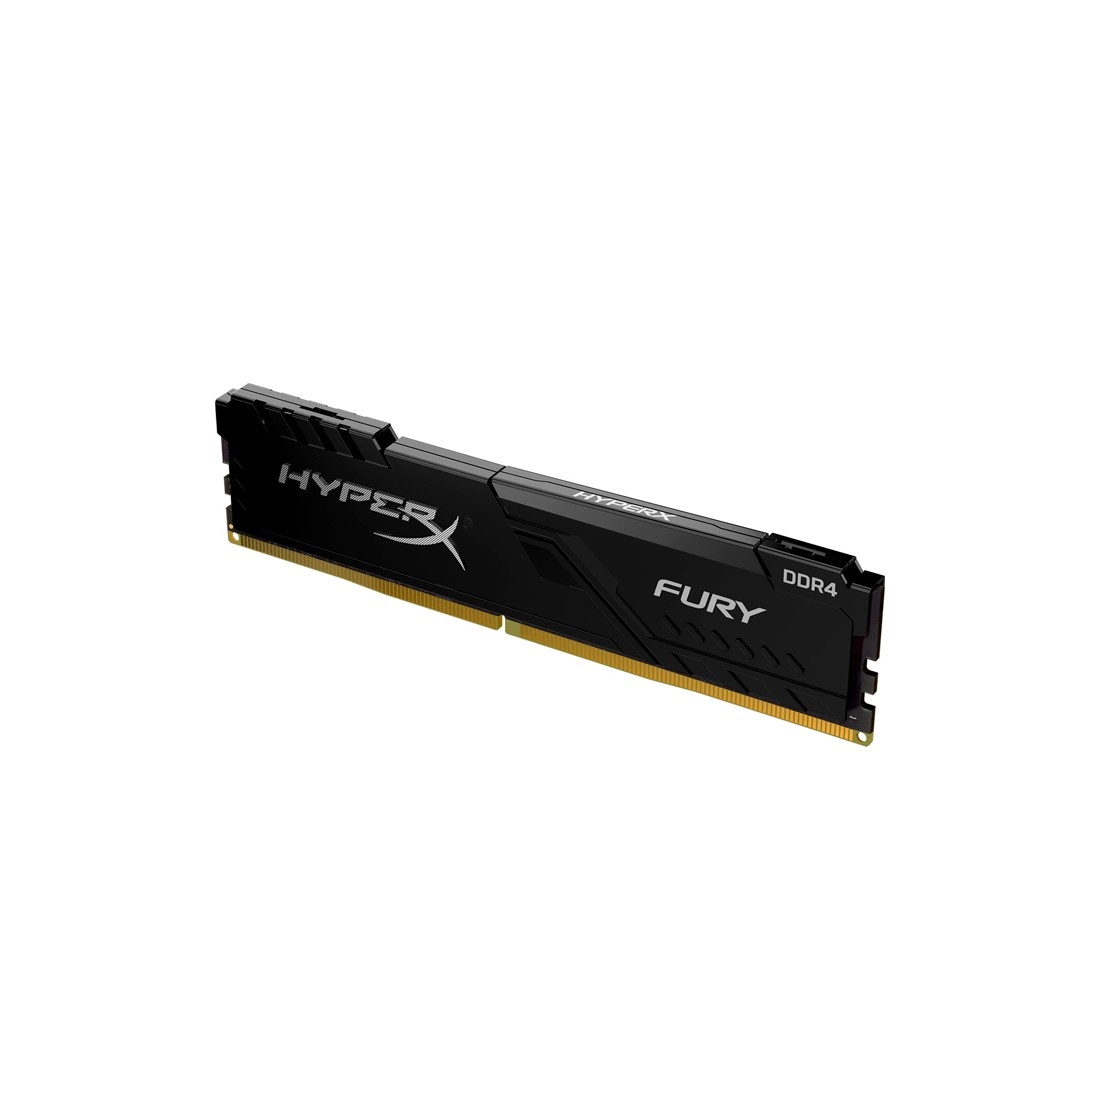 MEM 16G HX FURY 3.20GHZ DDR4